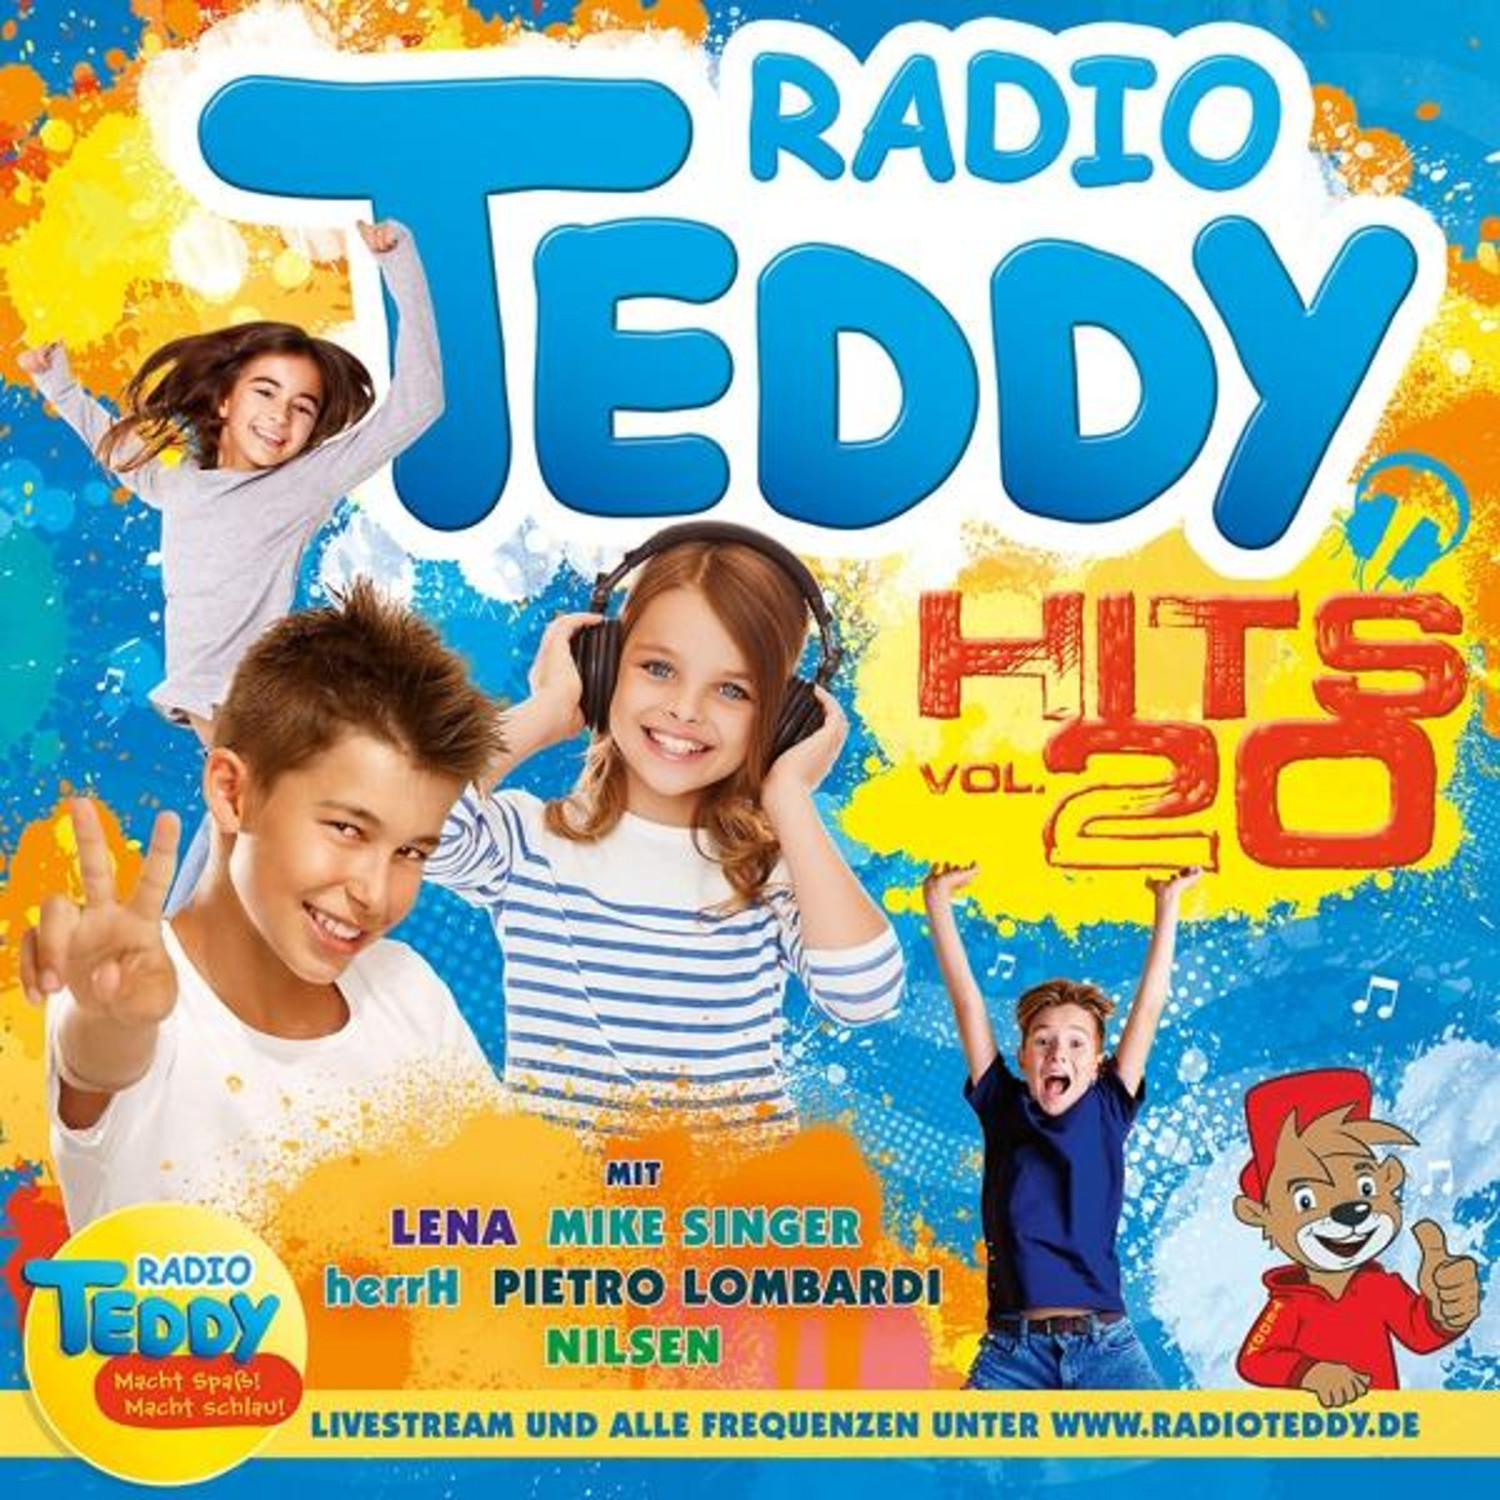 Radio Teddy Hits Vol. 20 (CD)